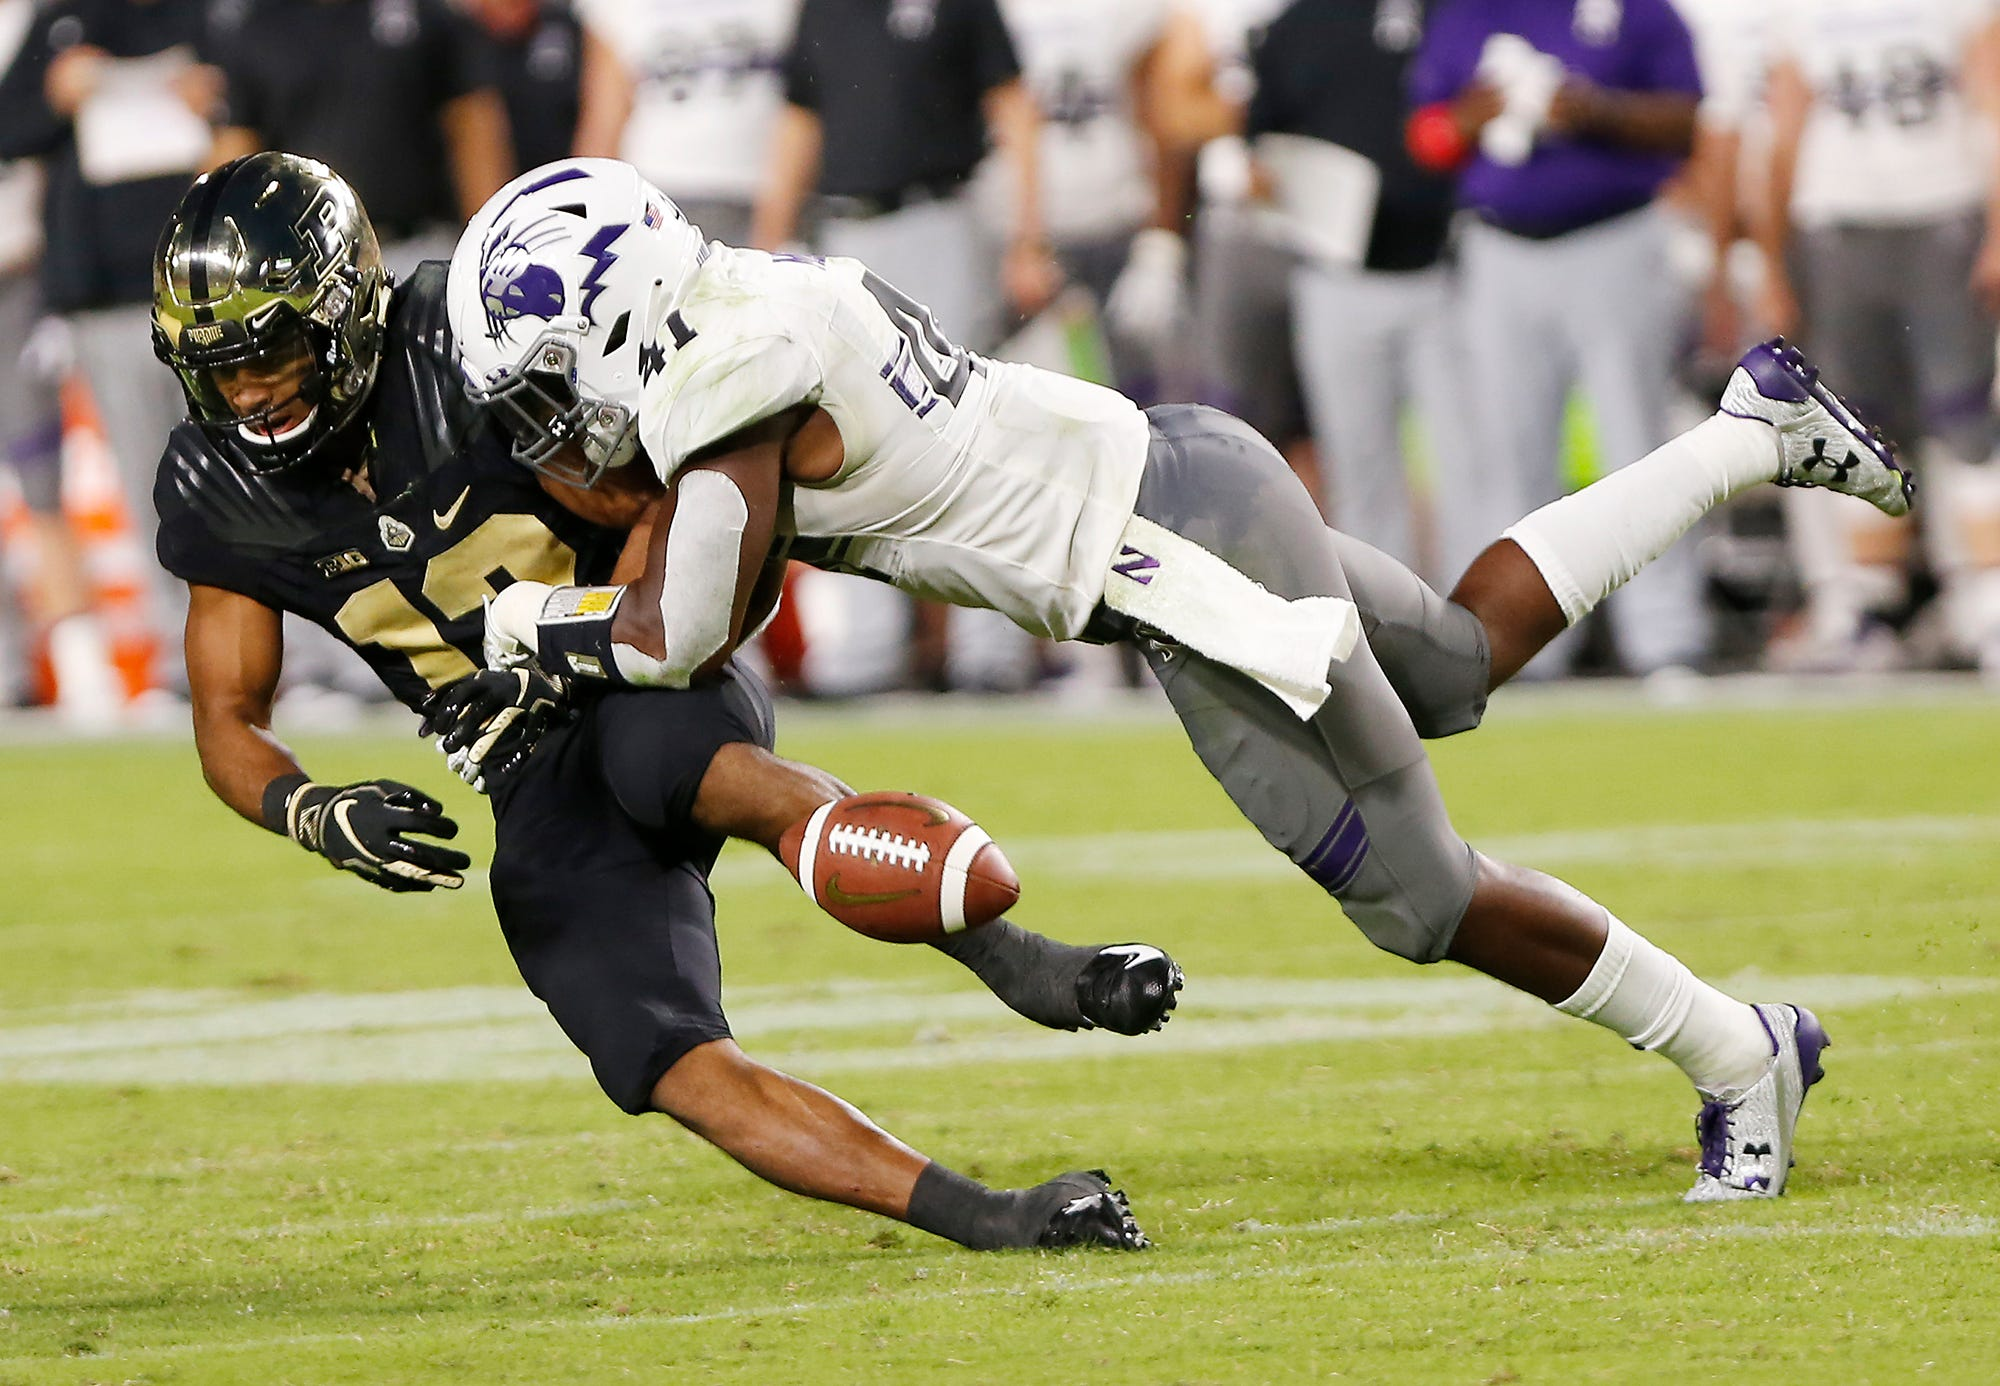 Jared Sparks of Purdue can't come up with a catch as he is hit by Jared McGee of Northwestern in the second quarter Thursday, August 30, 2018, in West Lafayette.